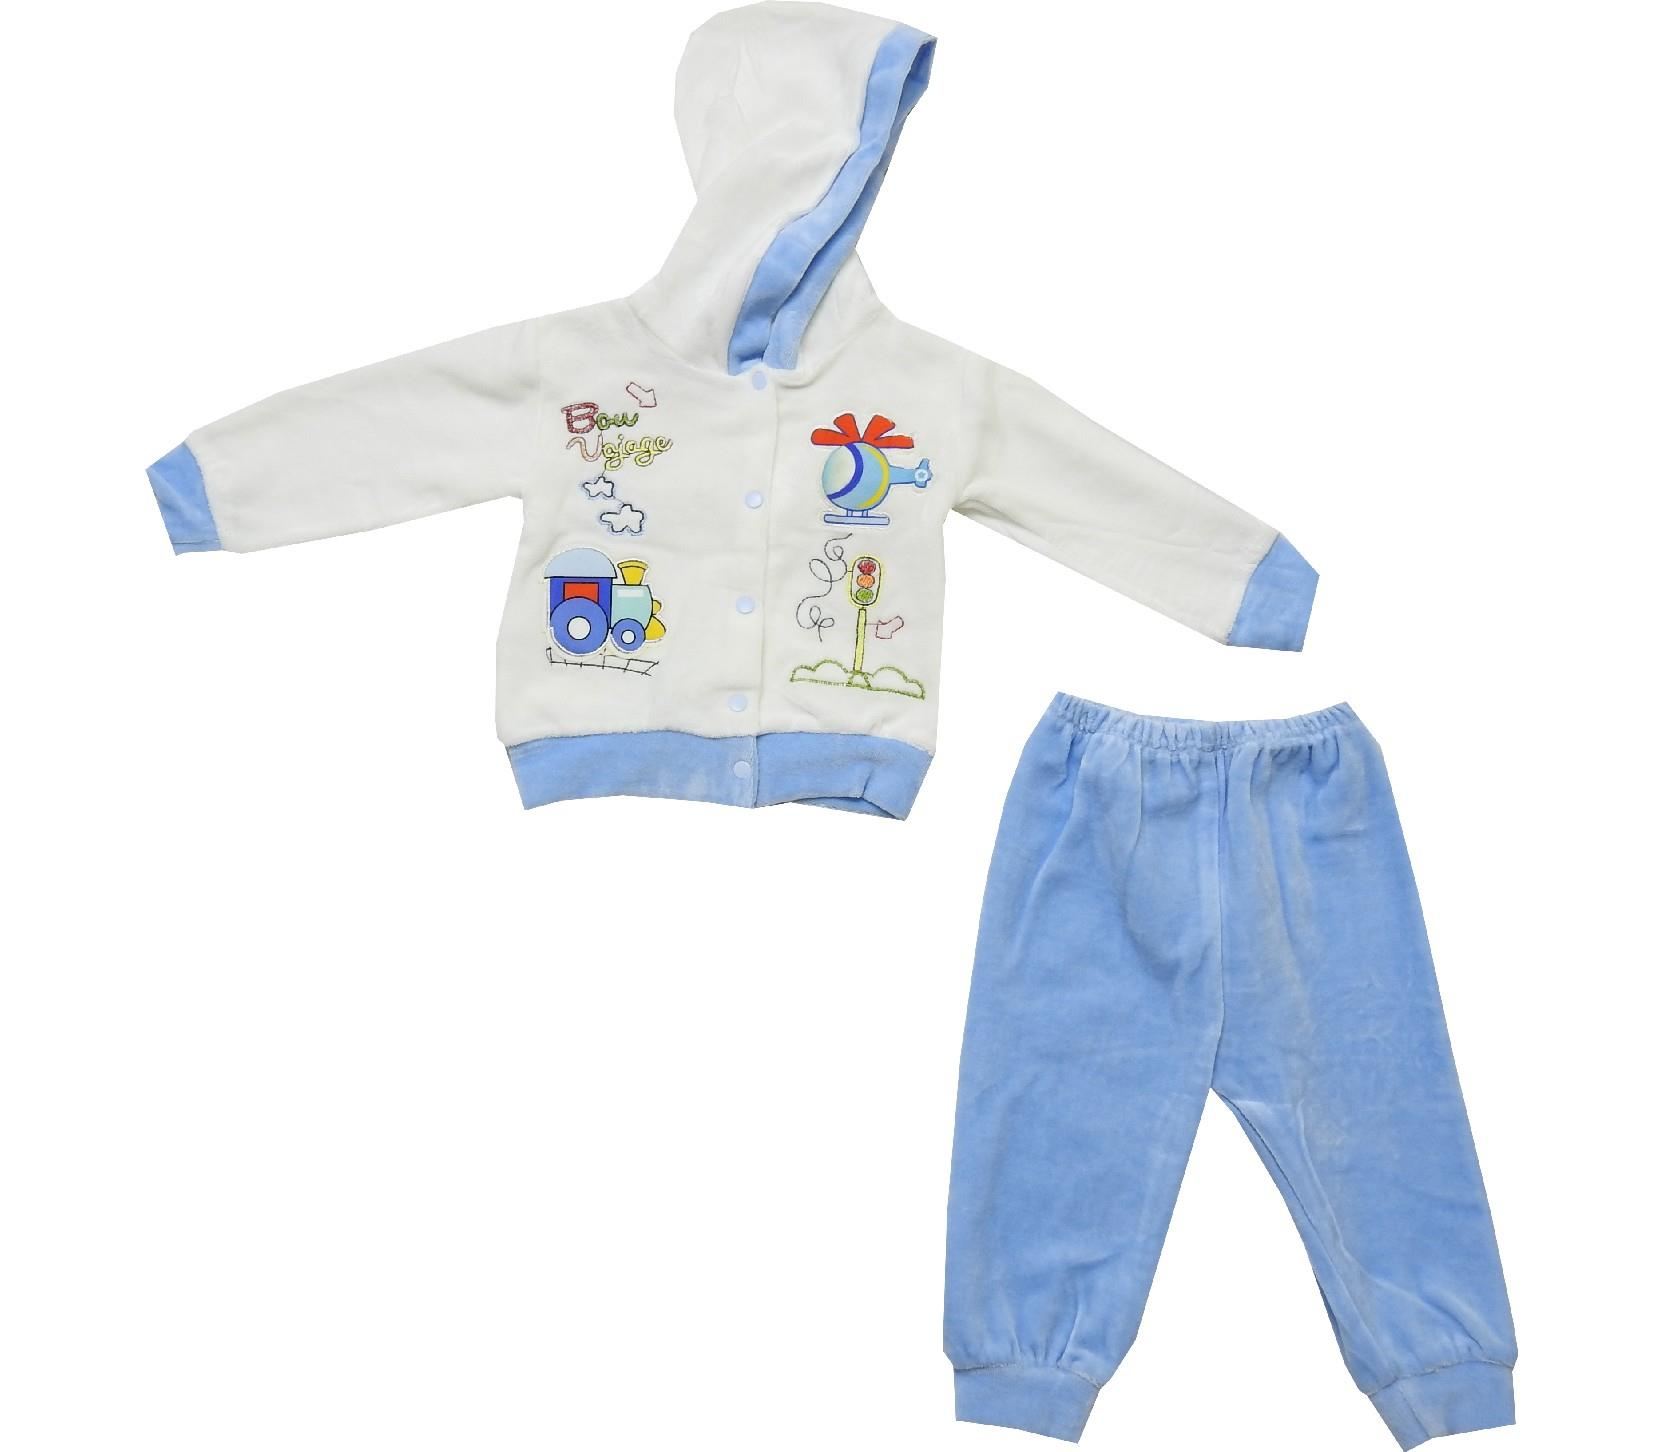 Wholesale hooded vojage print velvet sweatshirt and trouser double set suit for baby (6-9 month)